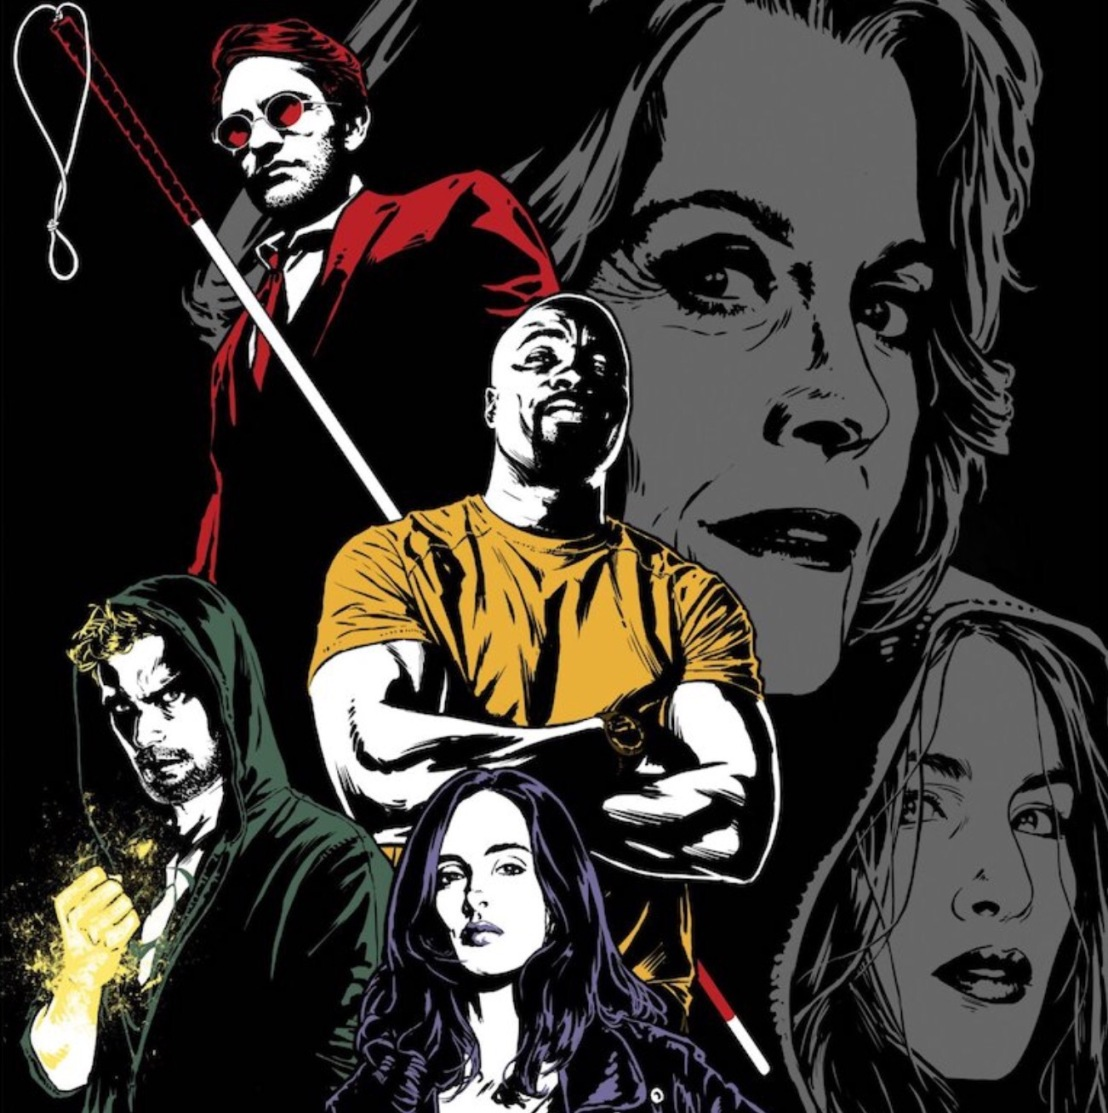 Joe Quesada art for Netflix's upcoming Defenders series